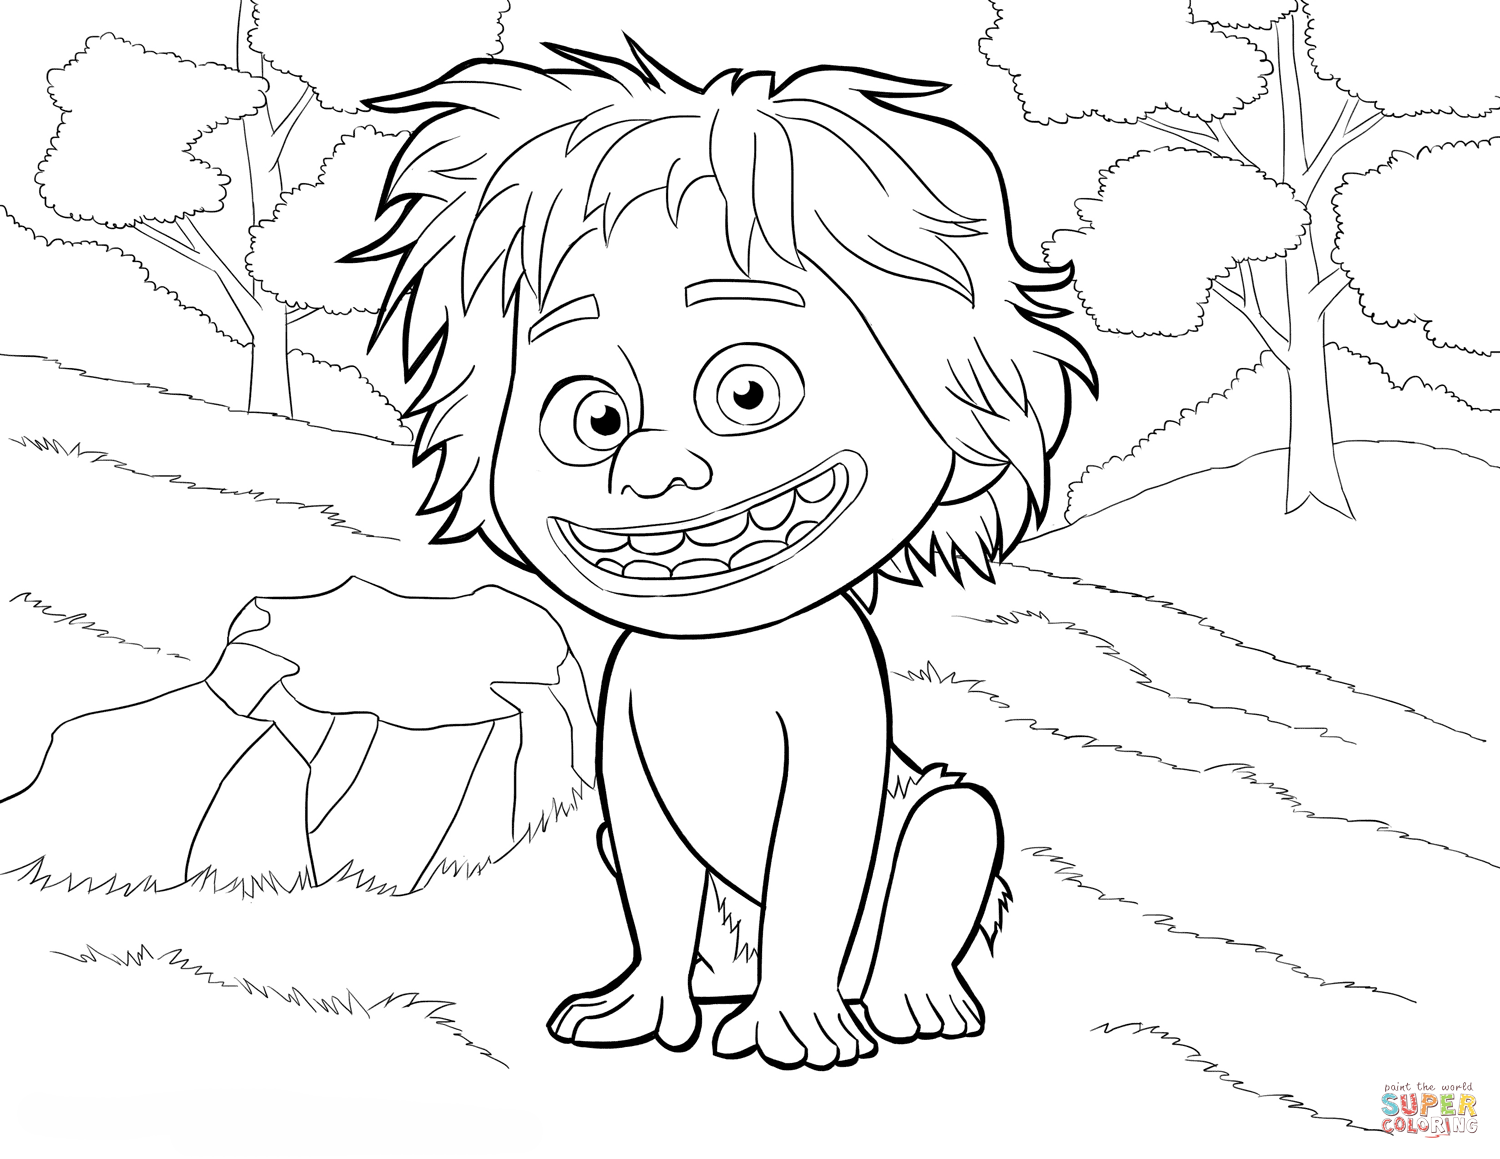 wheres spot coloring pages | Wheres Spot Page Coloring Pages